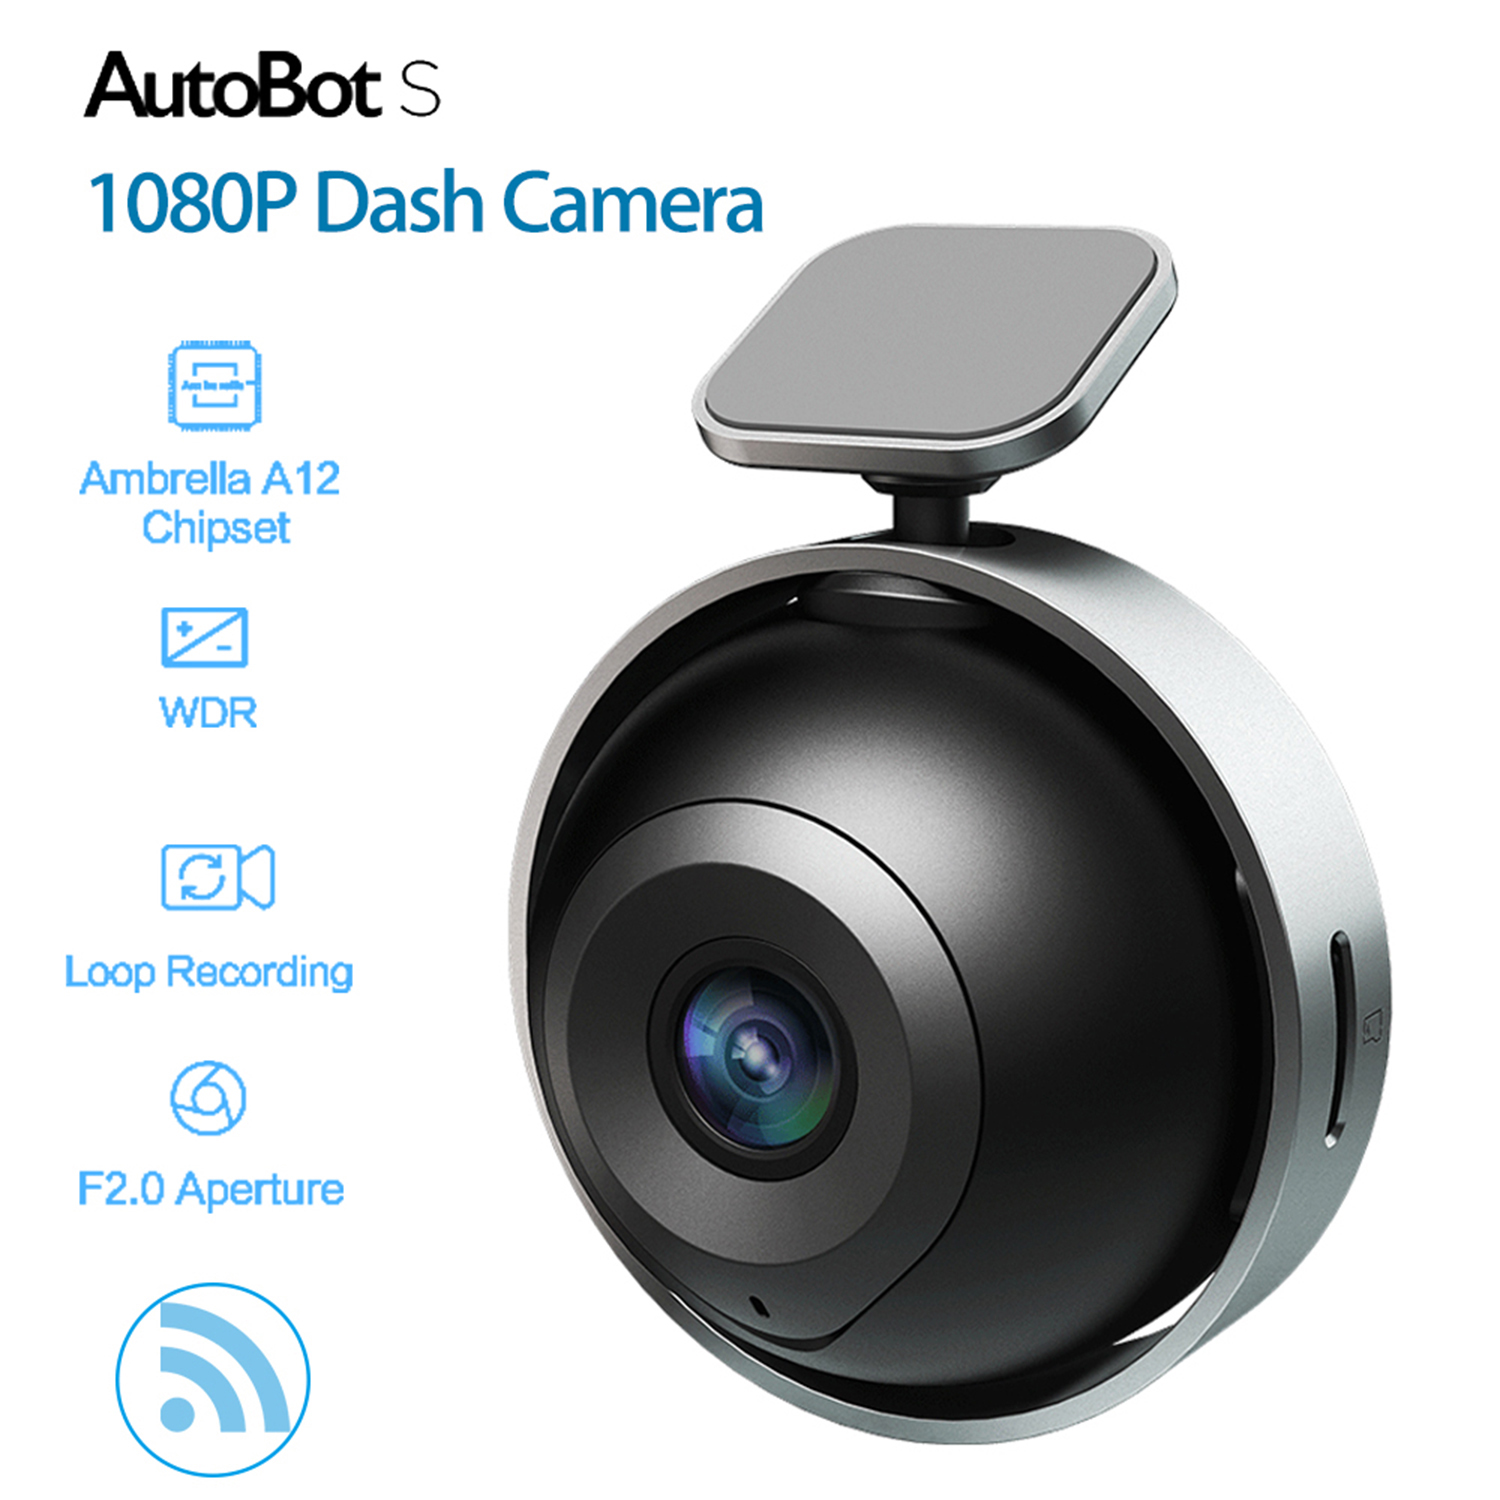 AutoBot S Full HD 1080P Car Camera WiFi Smart Dash Cam DVR Ambarella S2L33M WDR Mini Video Recorder G-Sensor Night Vision ...